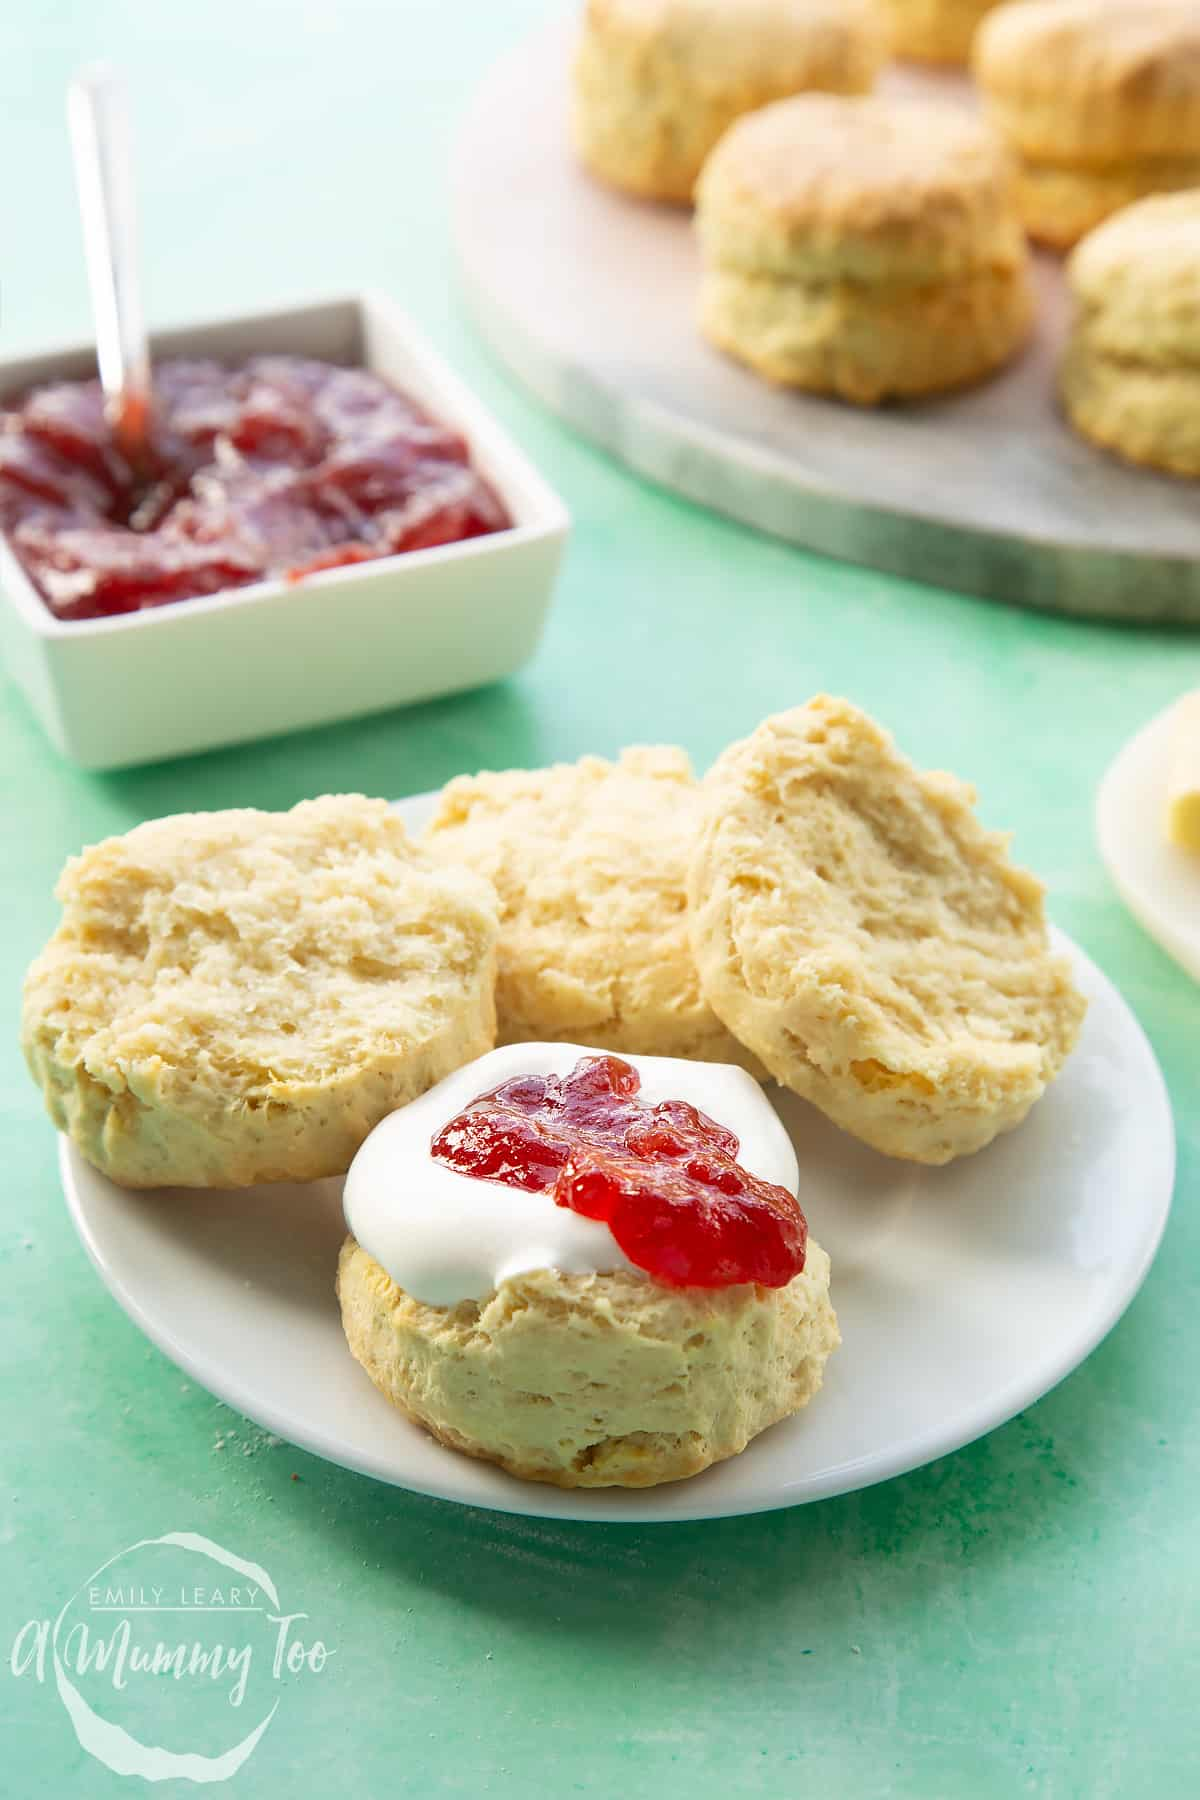 Two dairy free scones on a white plate. They are split in half and one is topped with jam and vegan whipped cream.